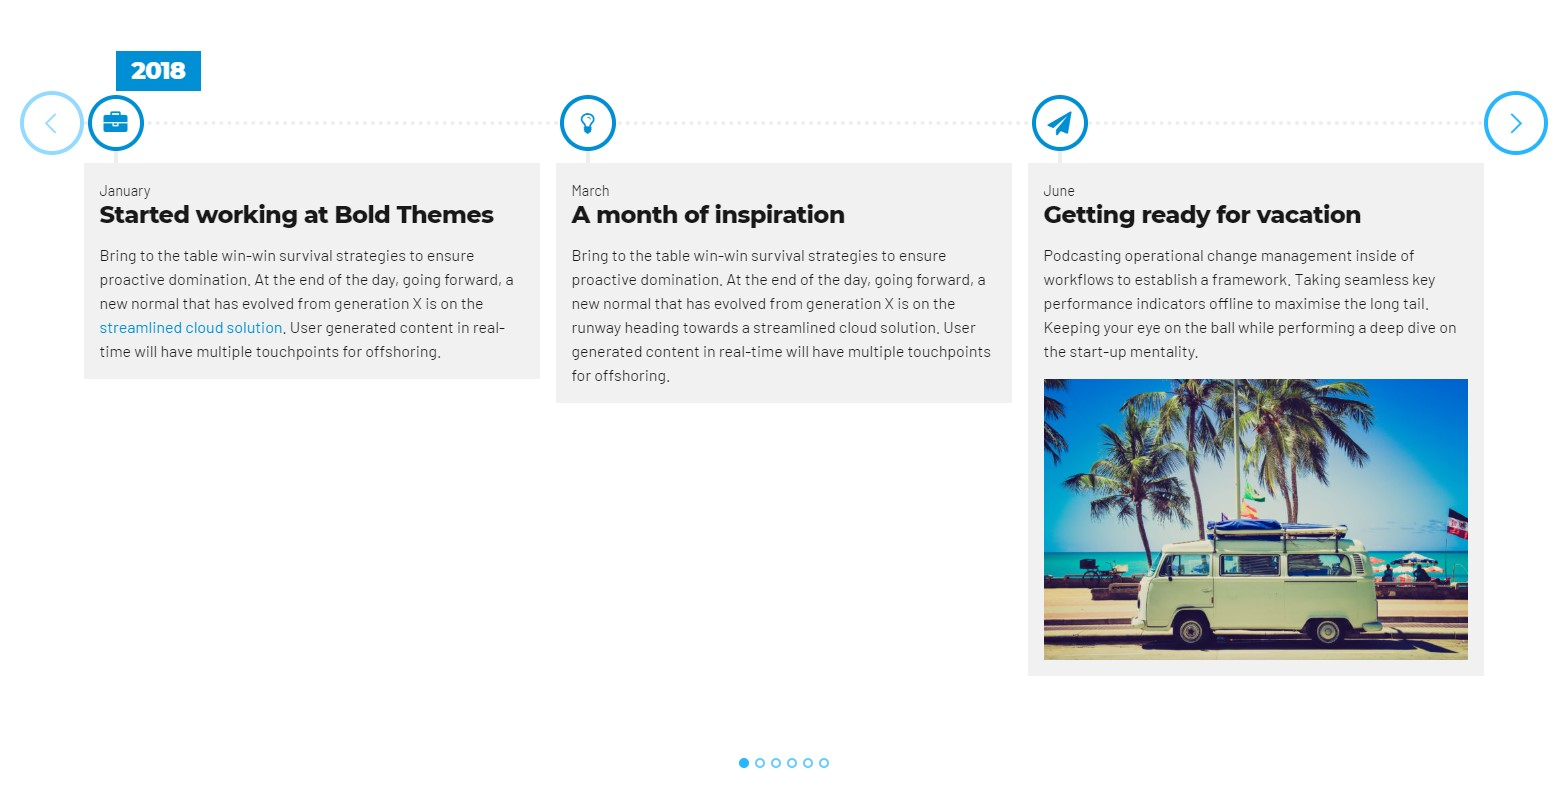 http://documentation.bold-themes.com/bold-timeline/wp-content/uploads/sites/53/2019/12/timeline-example-5.jpg